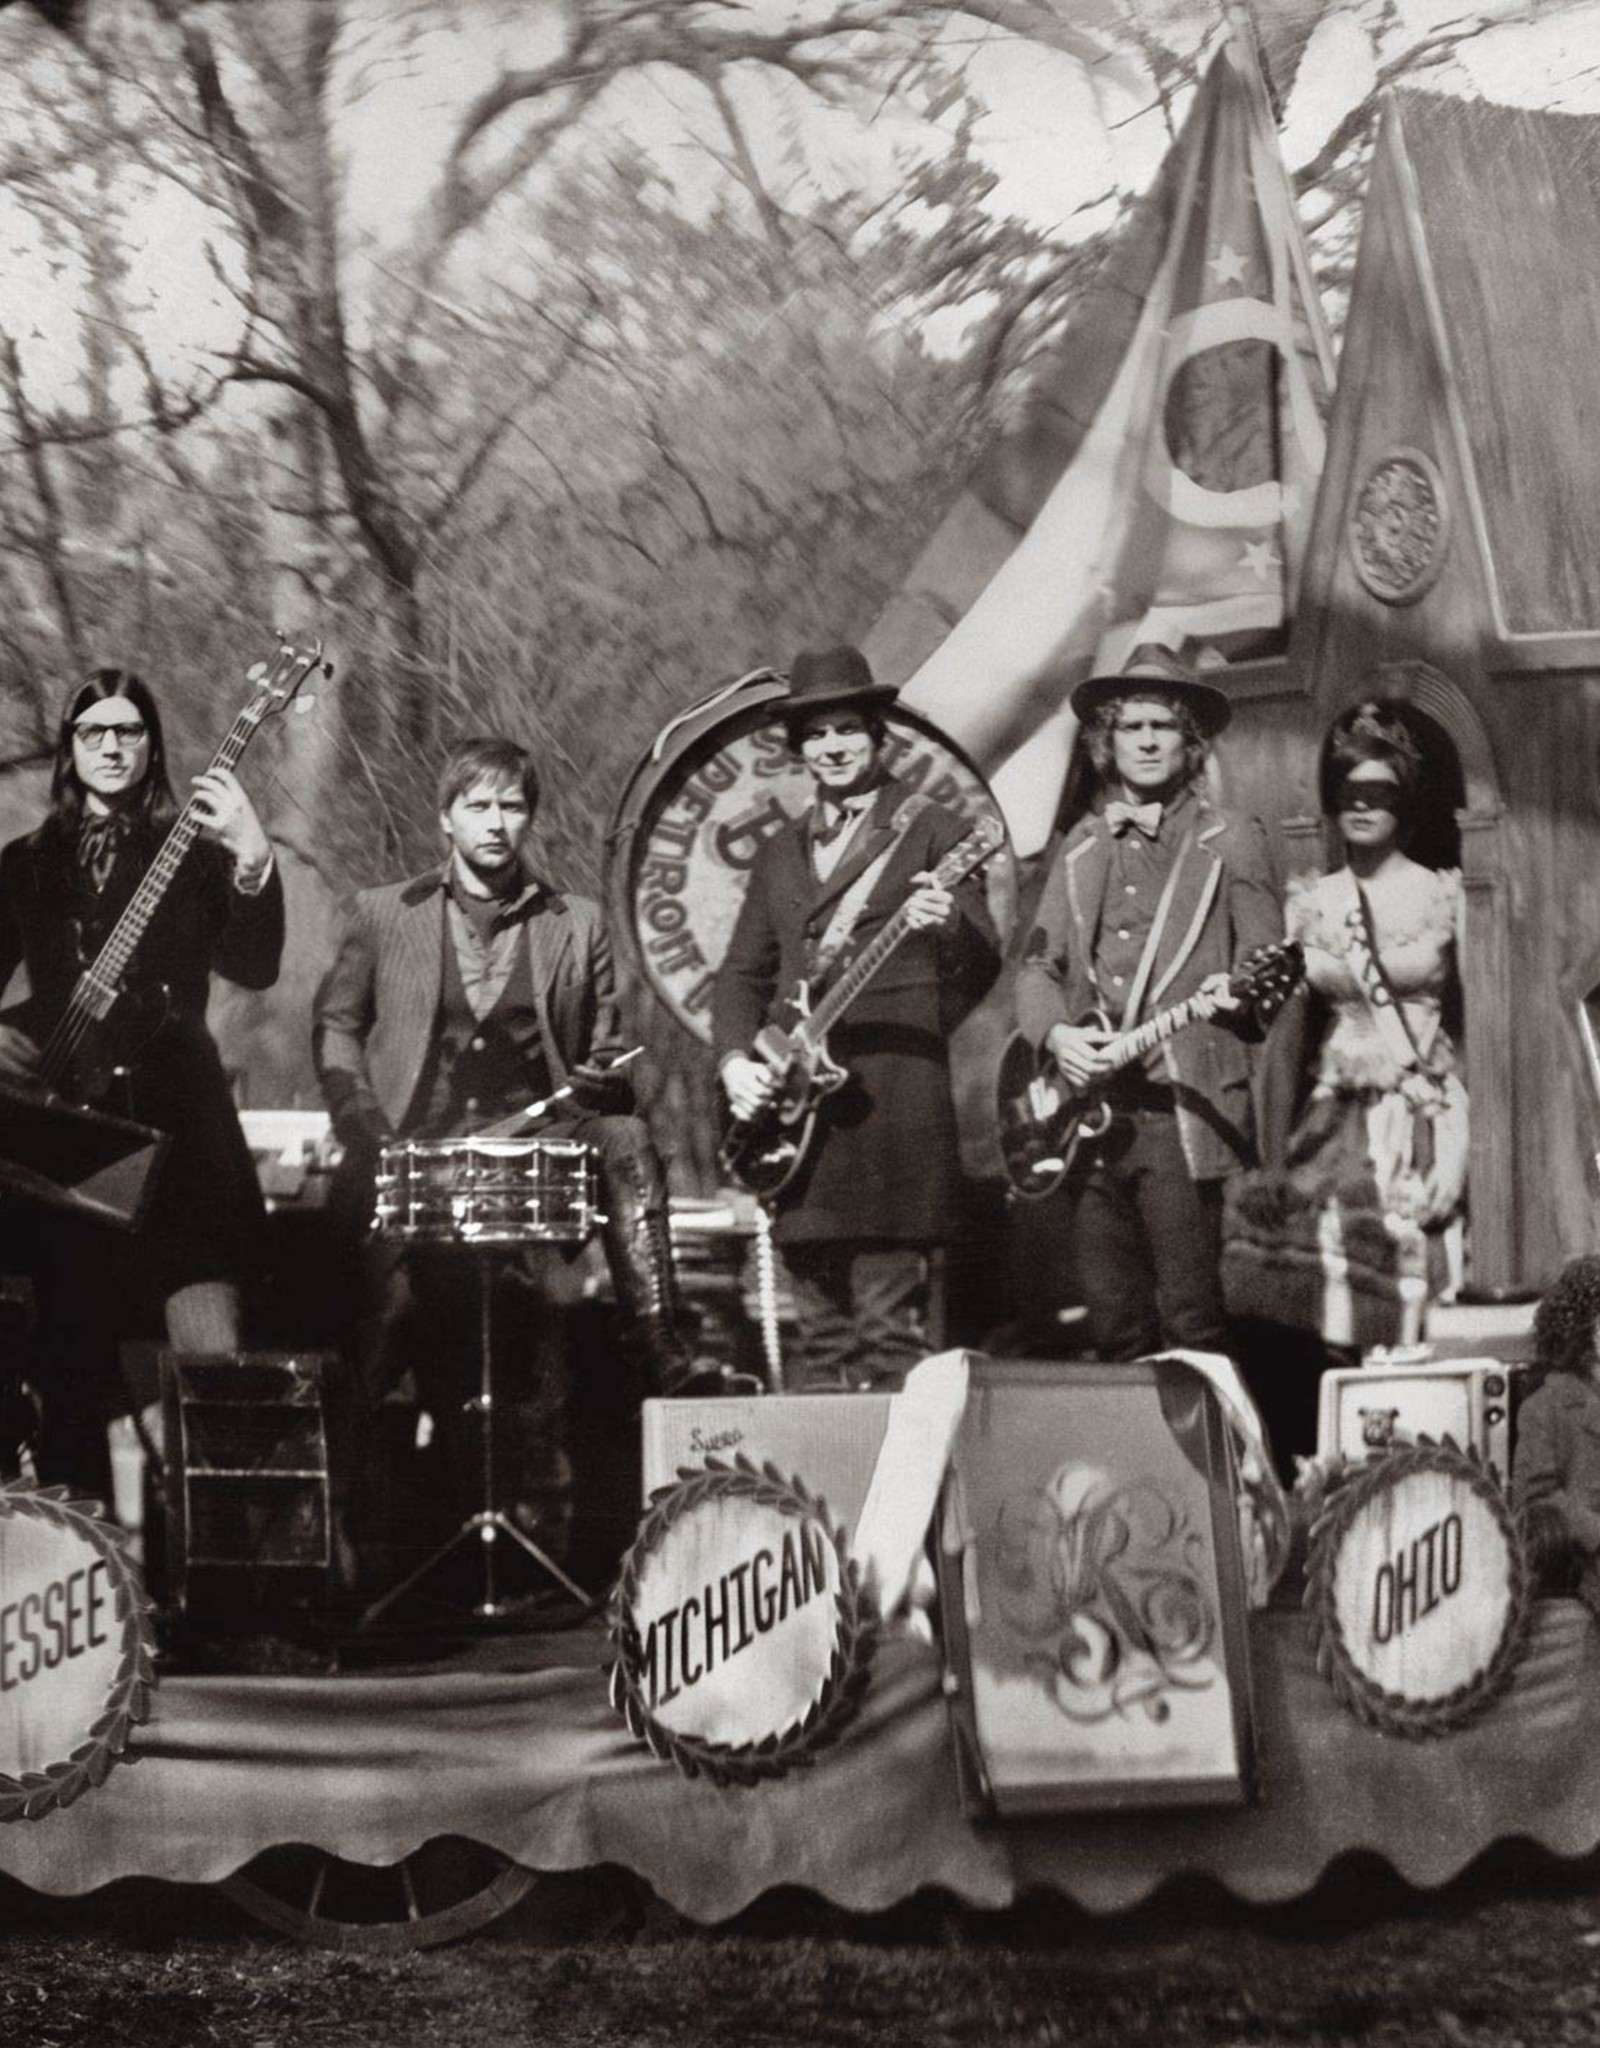 Raconteurs - Consolers Of The Lonely